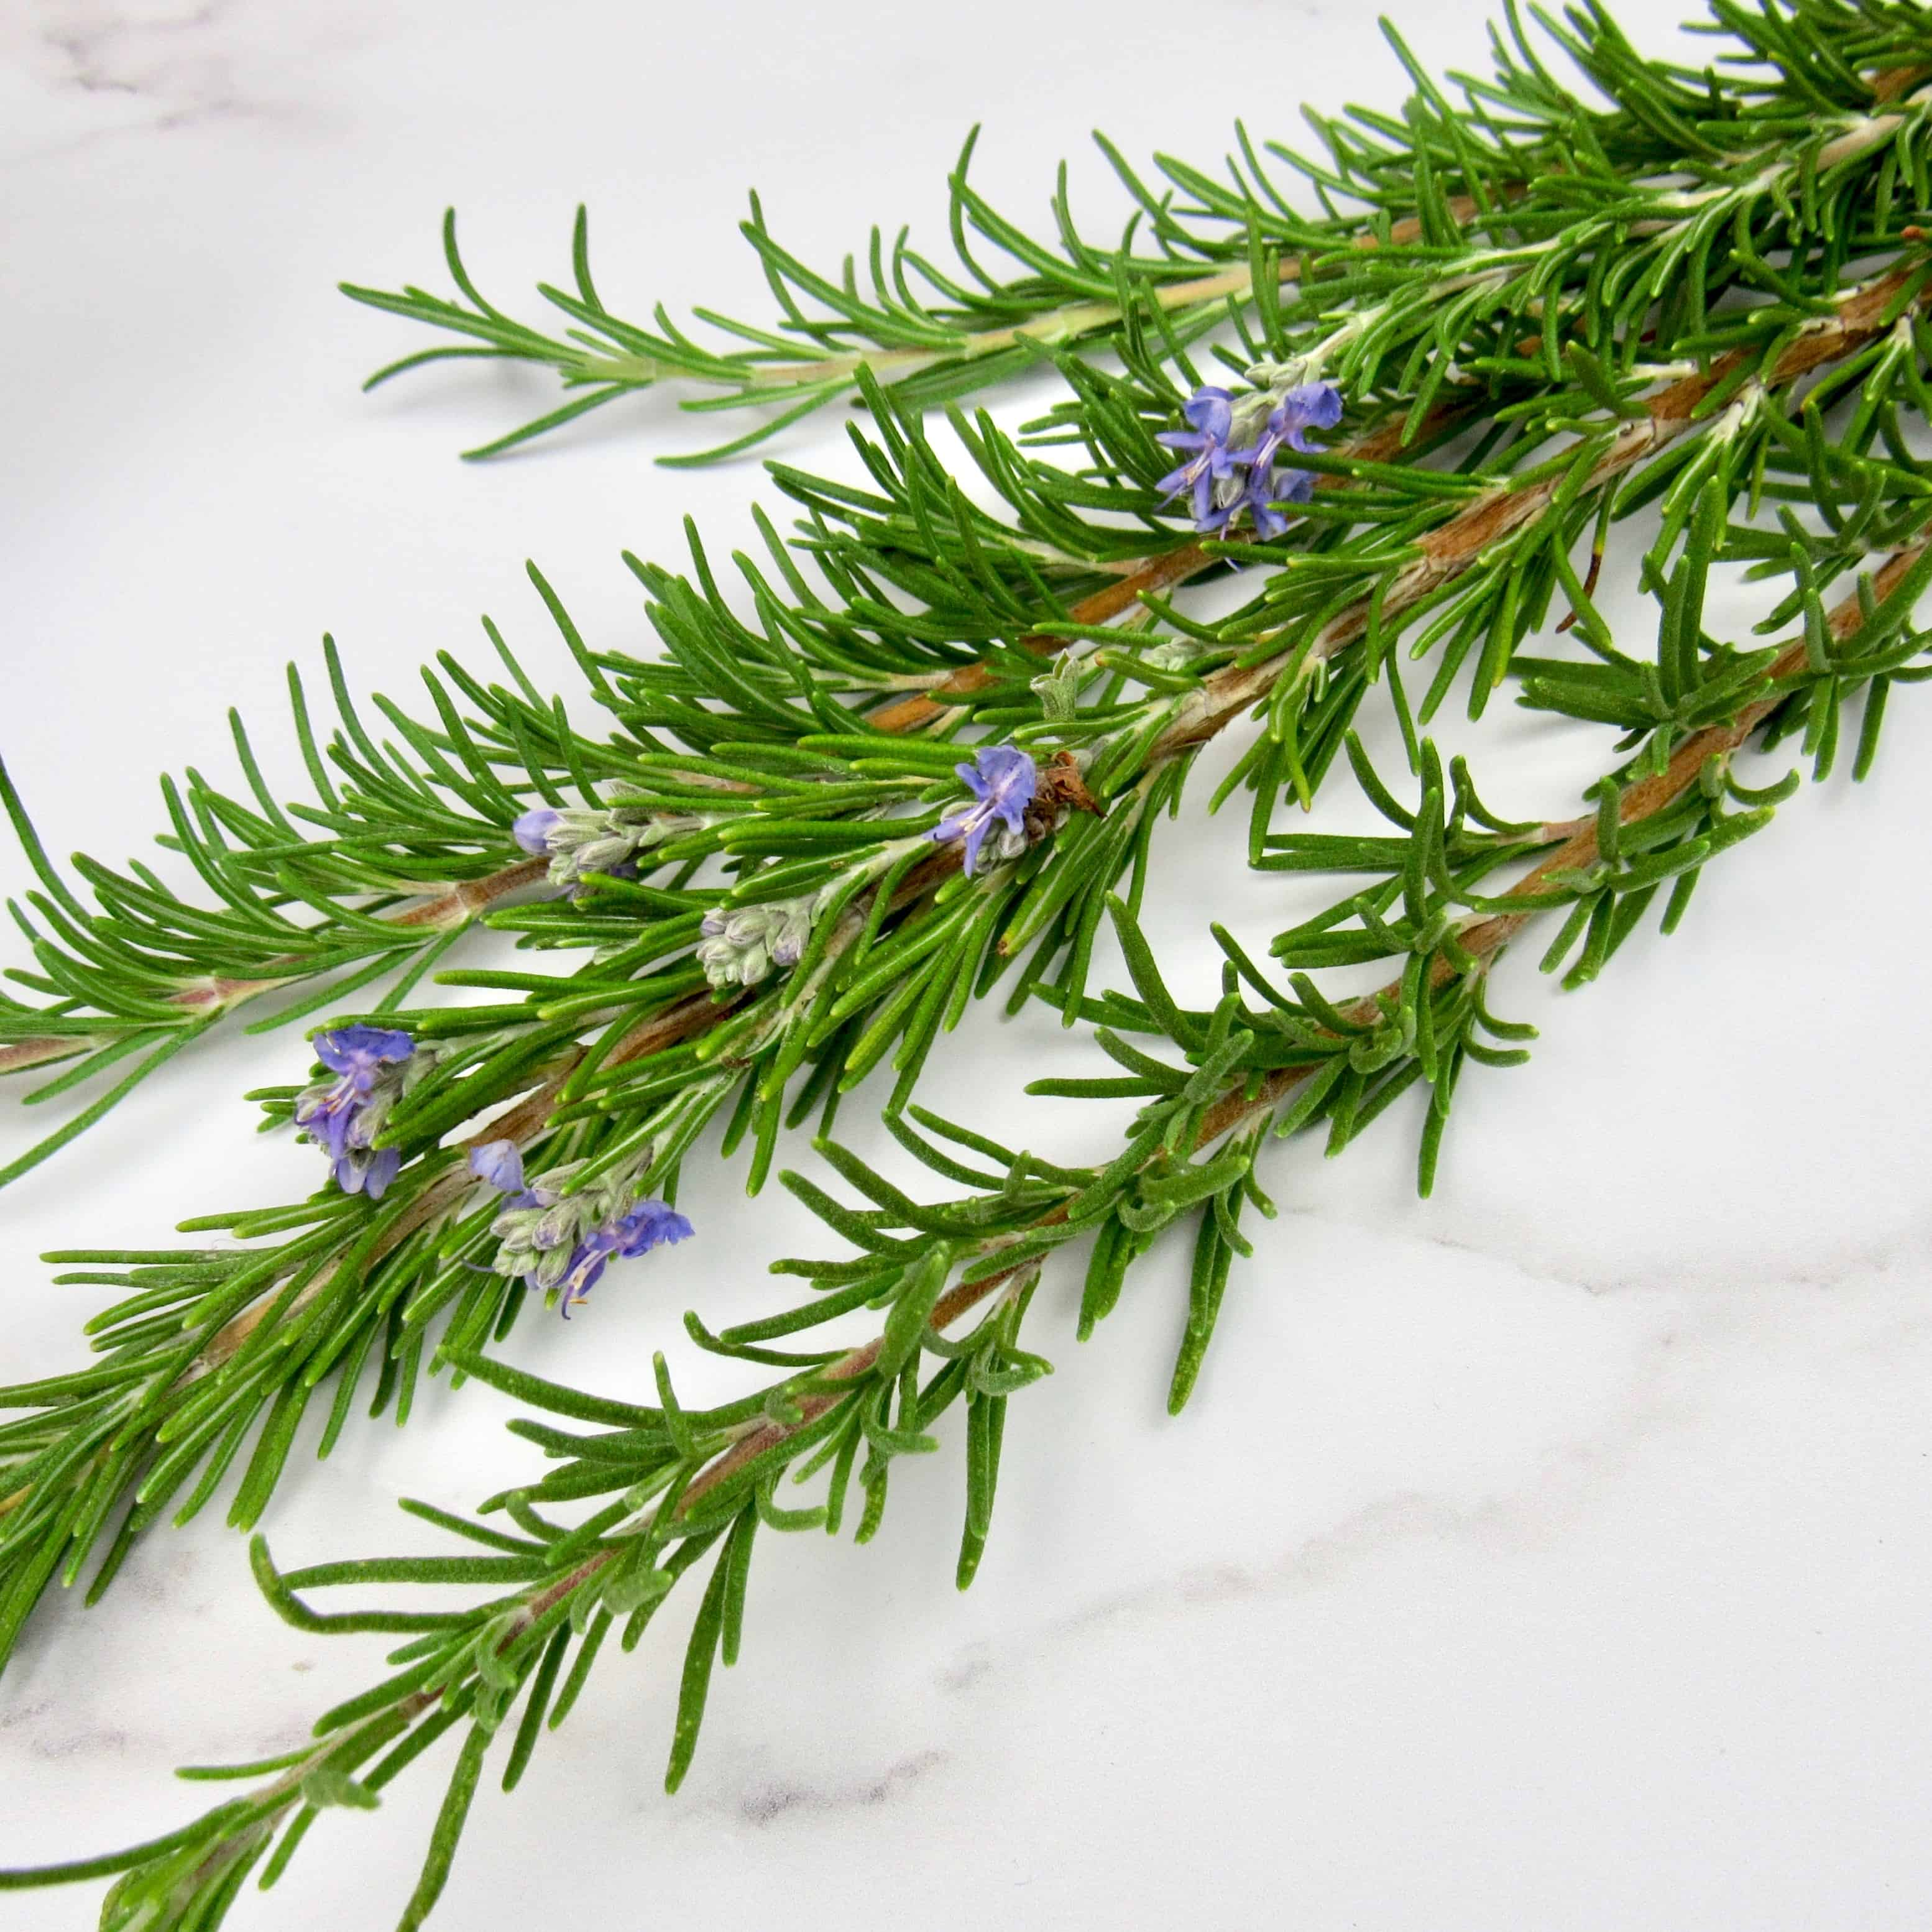 5 sprigs of rosemary on white marble counter